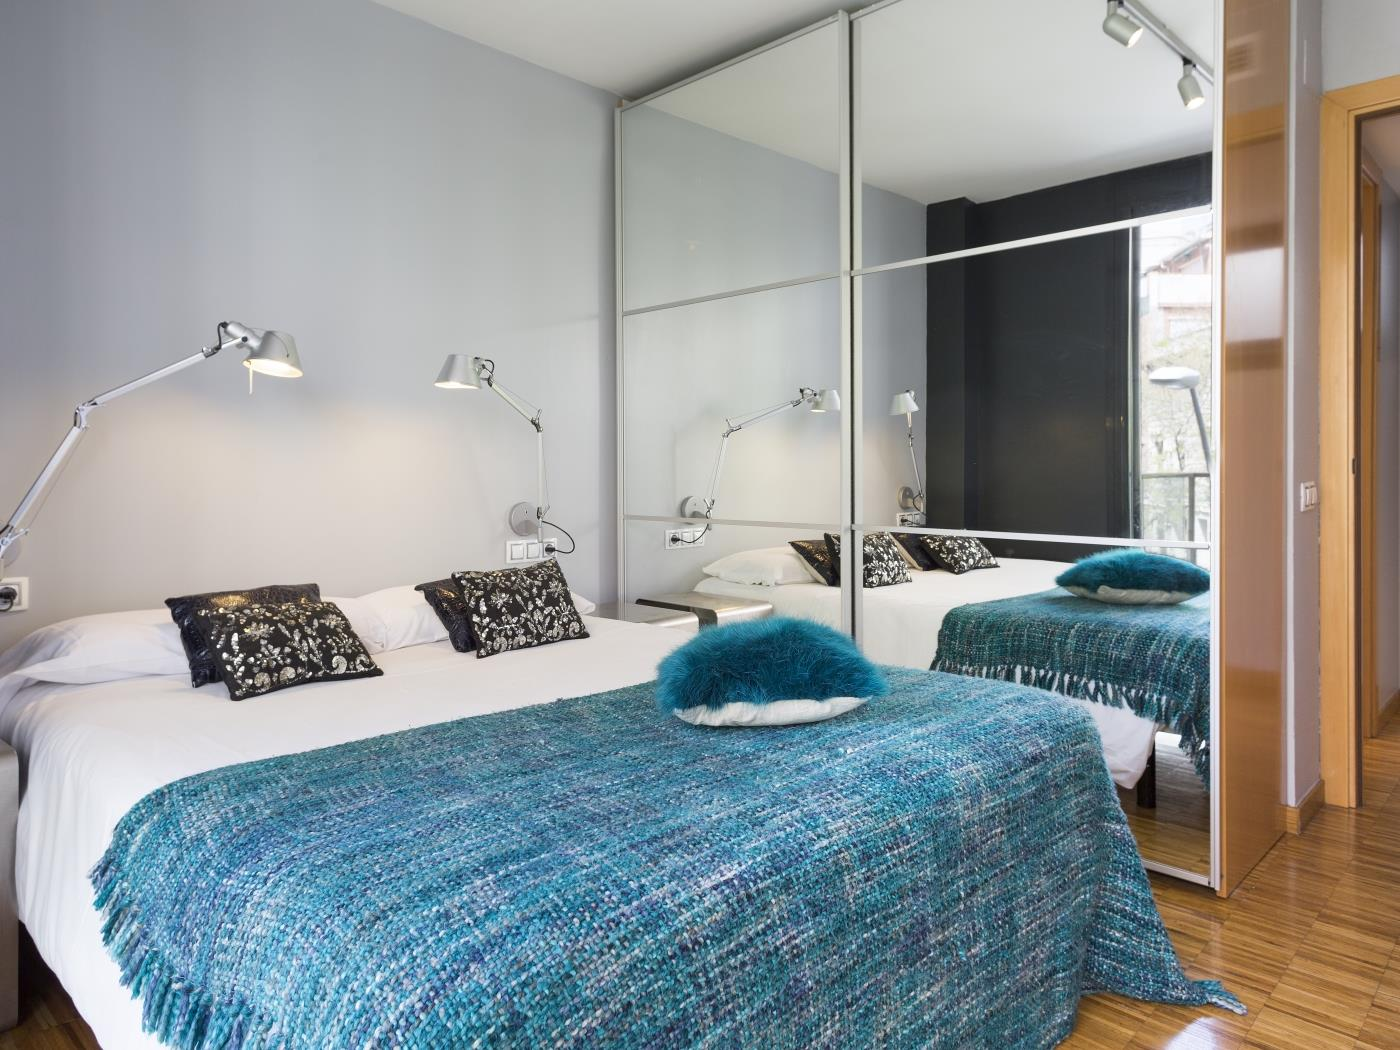 Executive Corporate Apartment Rentals in Barcelona for 6 - My Space barcelona Apartments